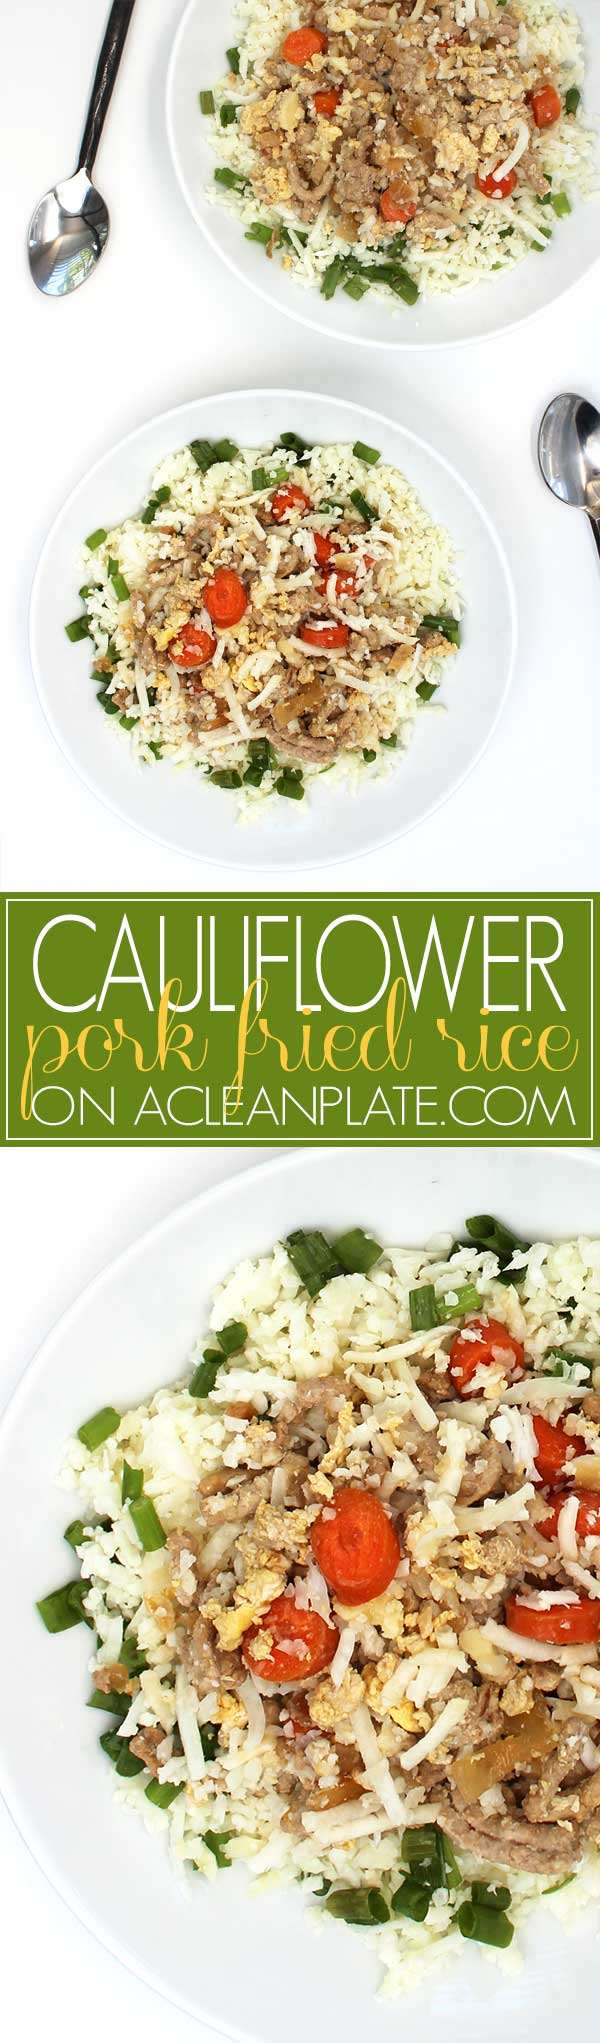 Cauliflower Pork Fried Rice recipe from One Pot Paleo on acleanplate.com